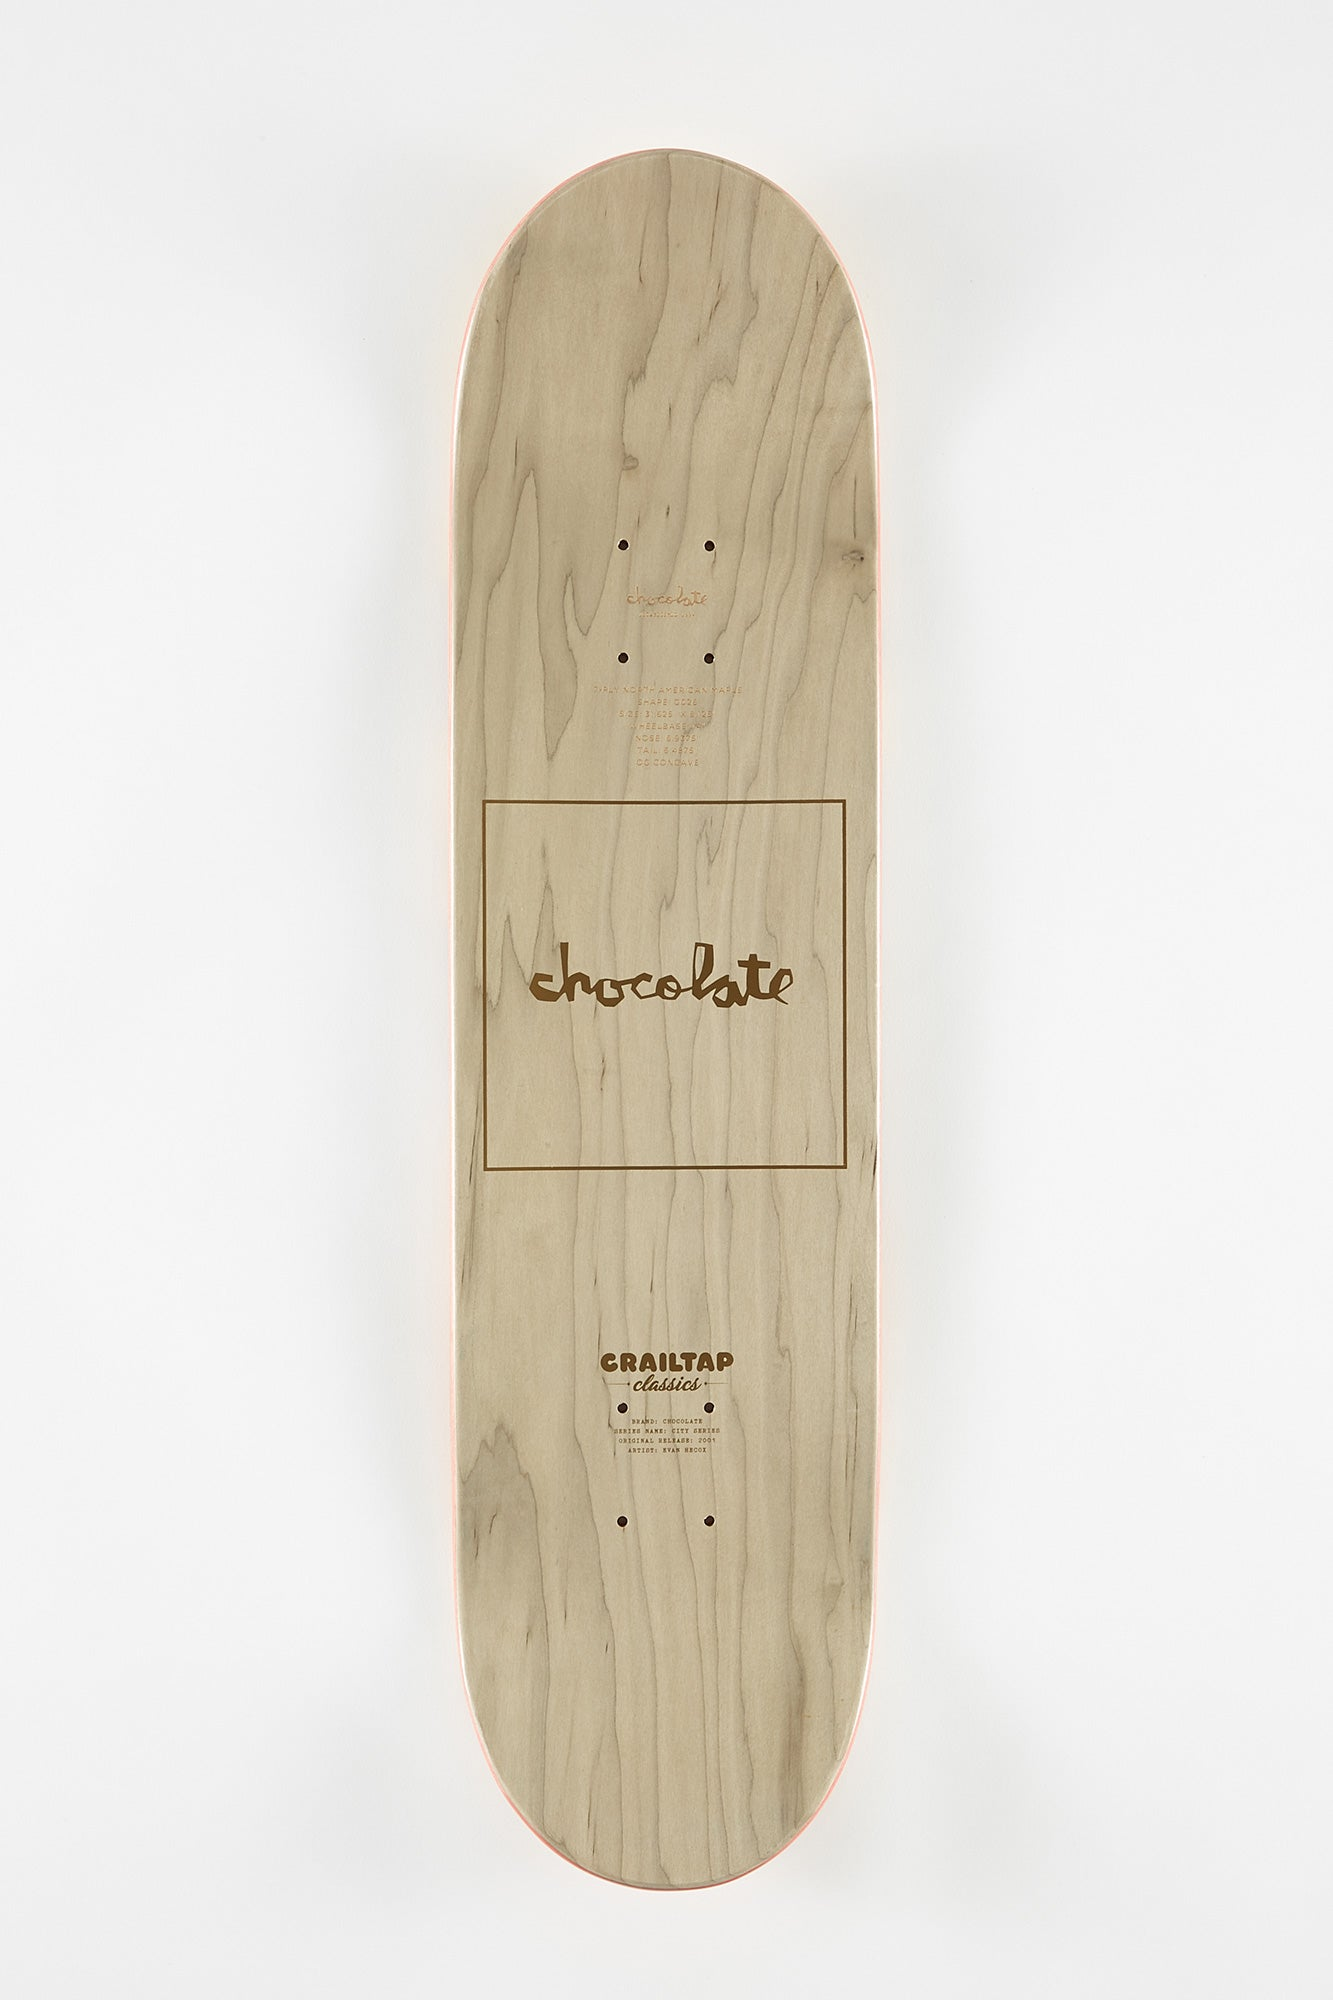 Chocolate City Anderson Skateboard Deck 8.125""